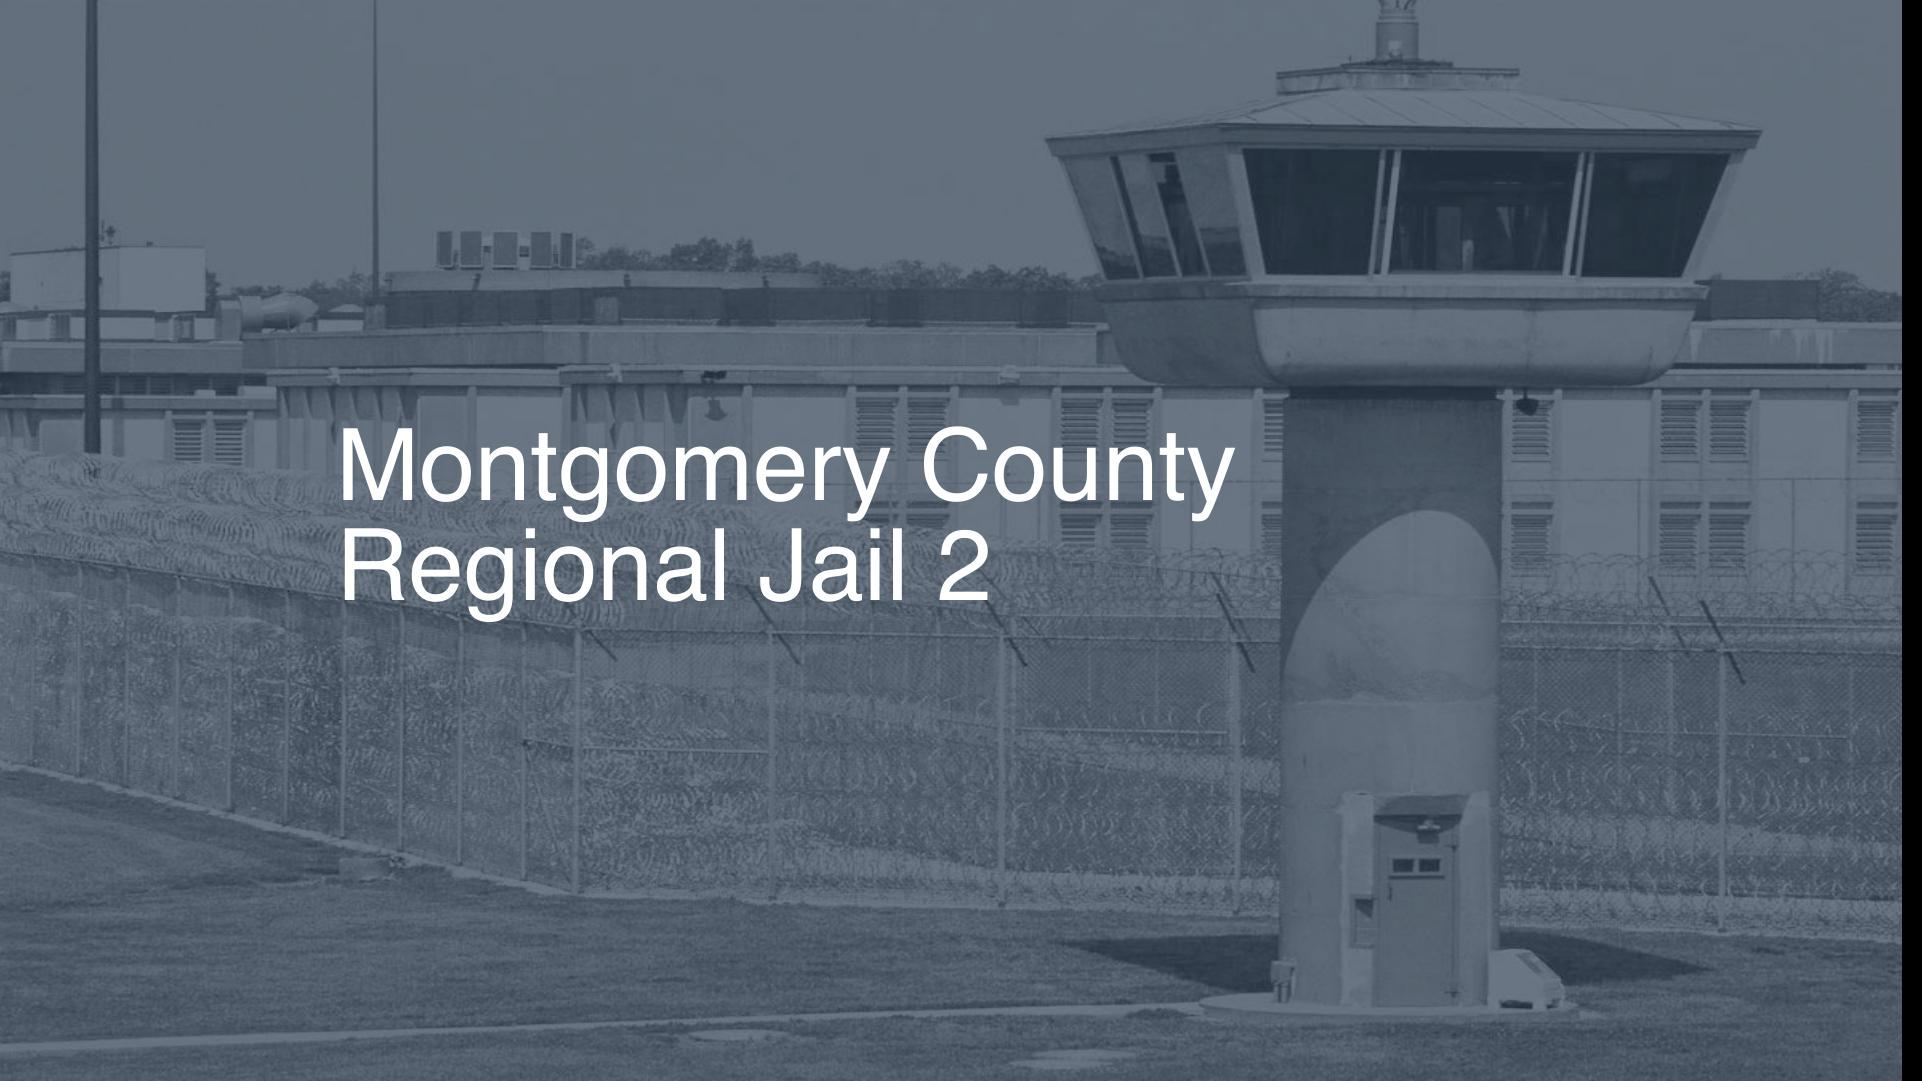 Montgomery County Regional Jail Inmate Search, Lookup